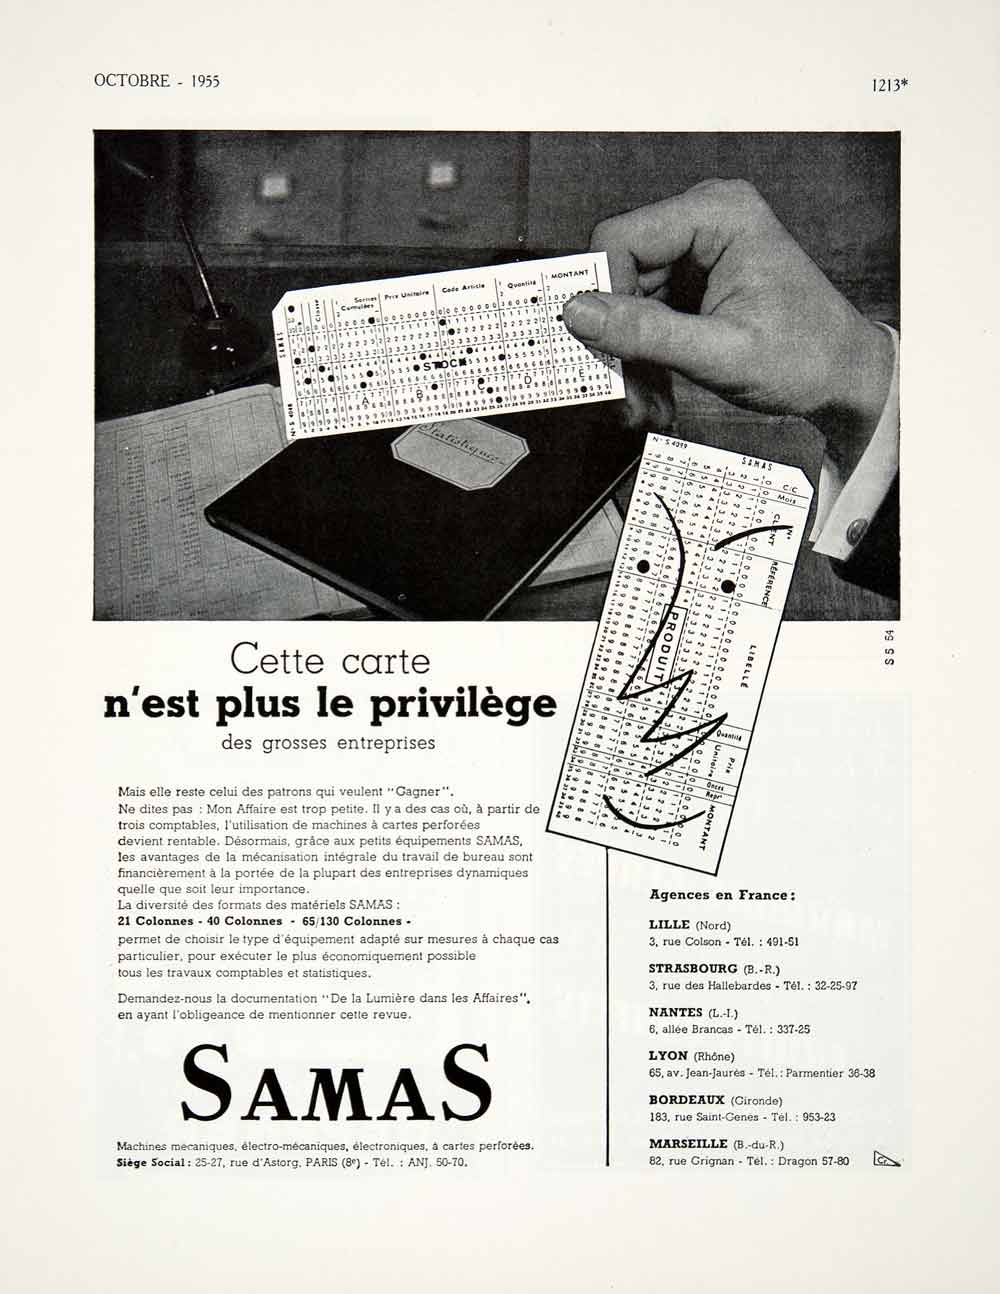 1955 Ad Samas Paris France Rue d'Astorg French Advertisement Card Montant VEN2